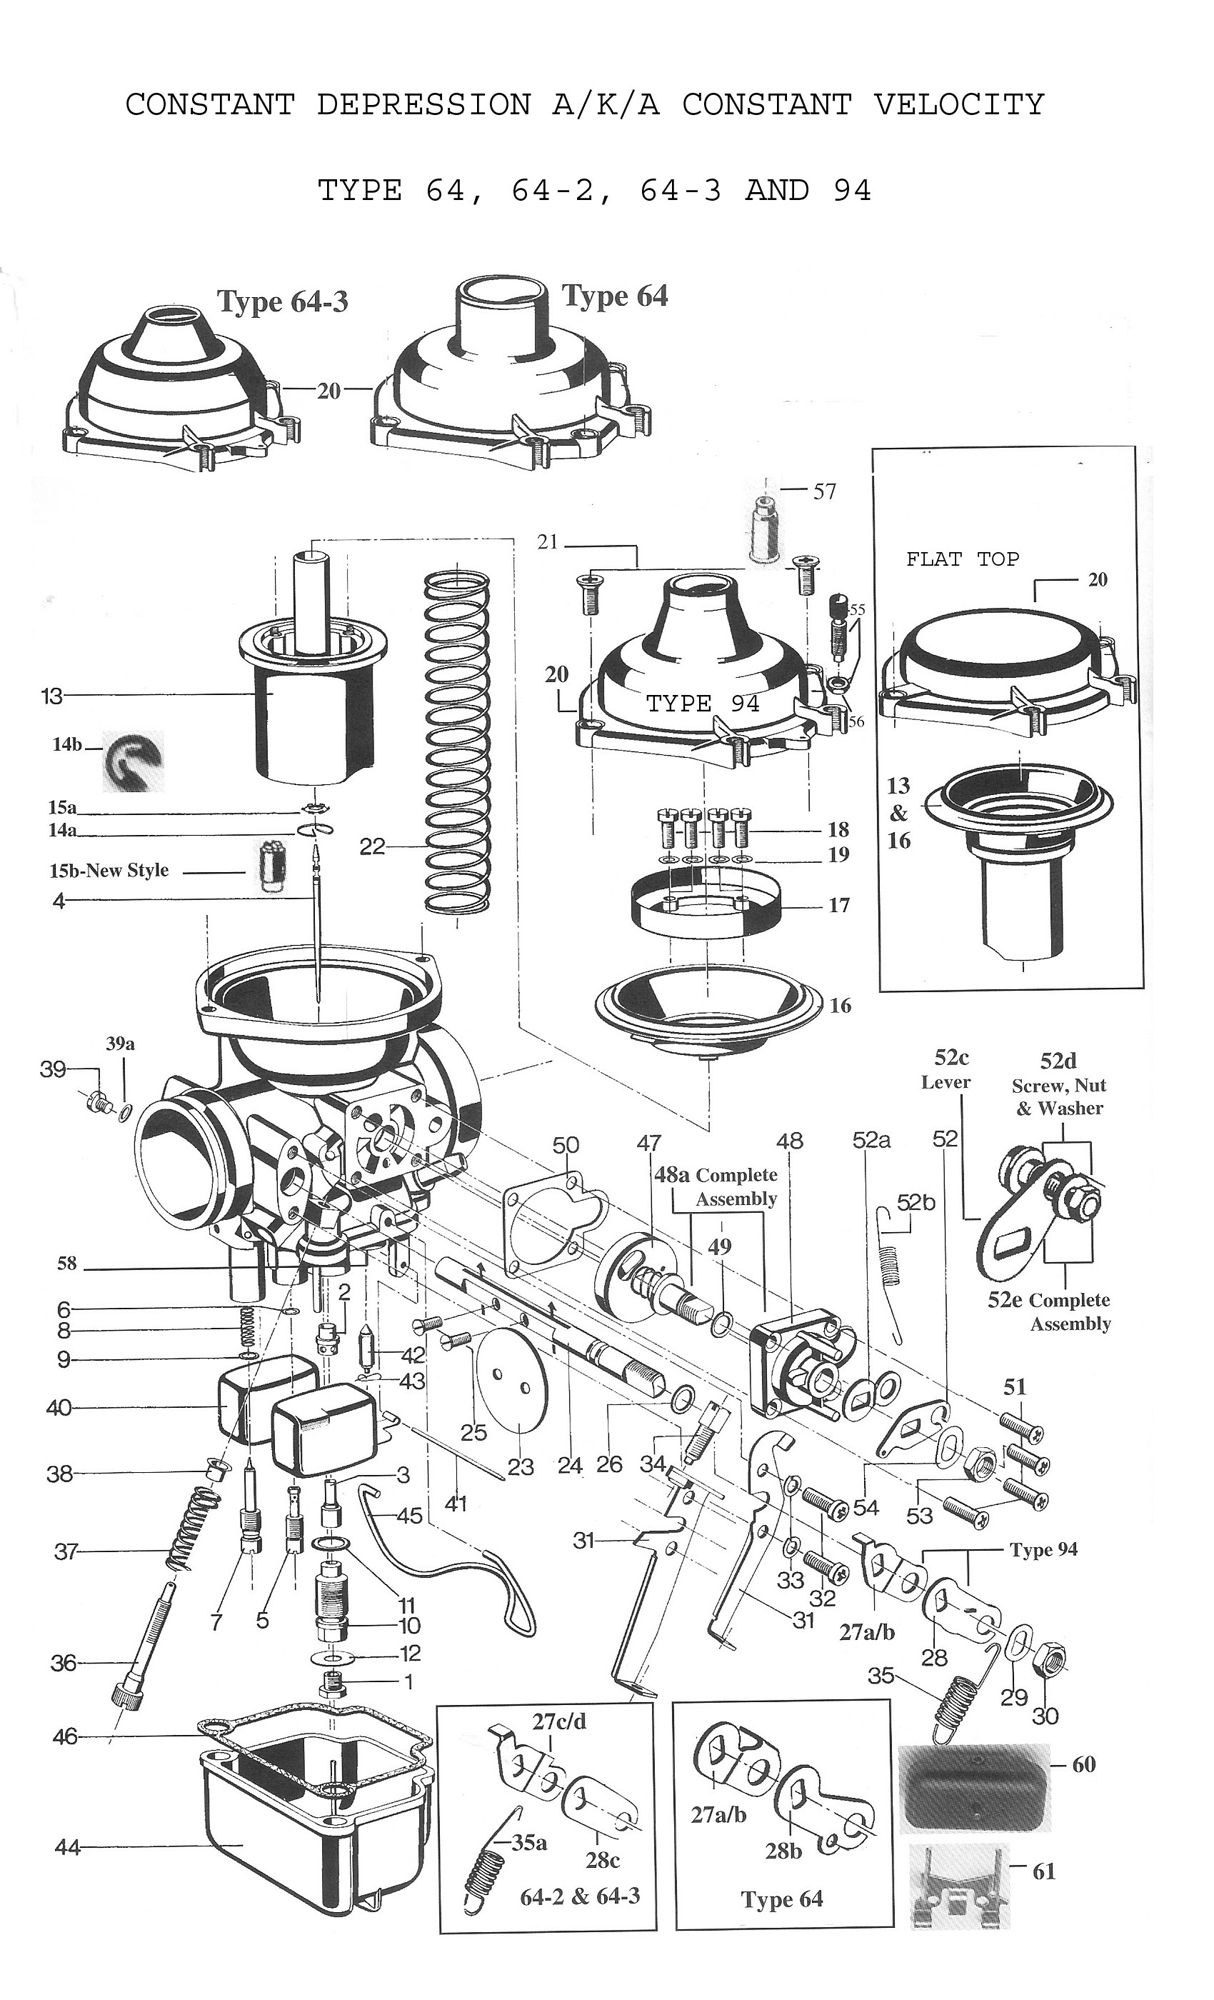 Ford F250 Wiring Diagram Online likewise Bmw Motorcycle Wiring Diagrams also Index moreover R60 Bmw Ignition Switch Wiring also Bmw R60 Engine. on bmw airhead wiring diagram